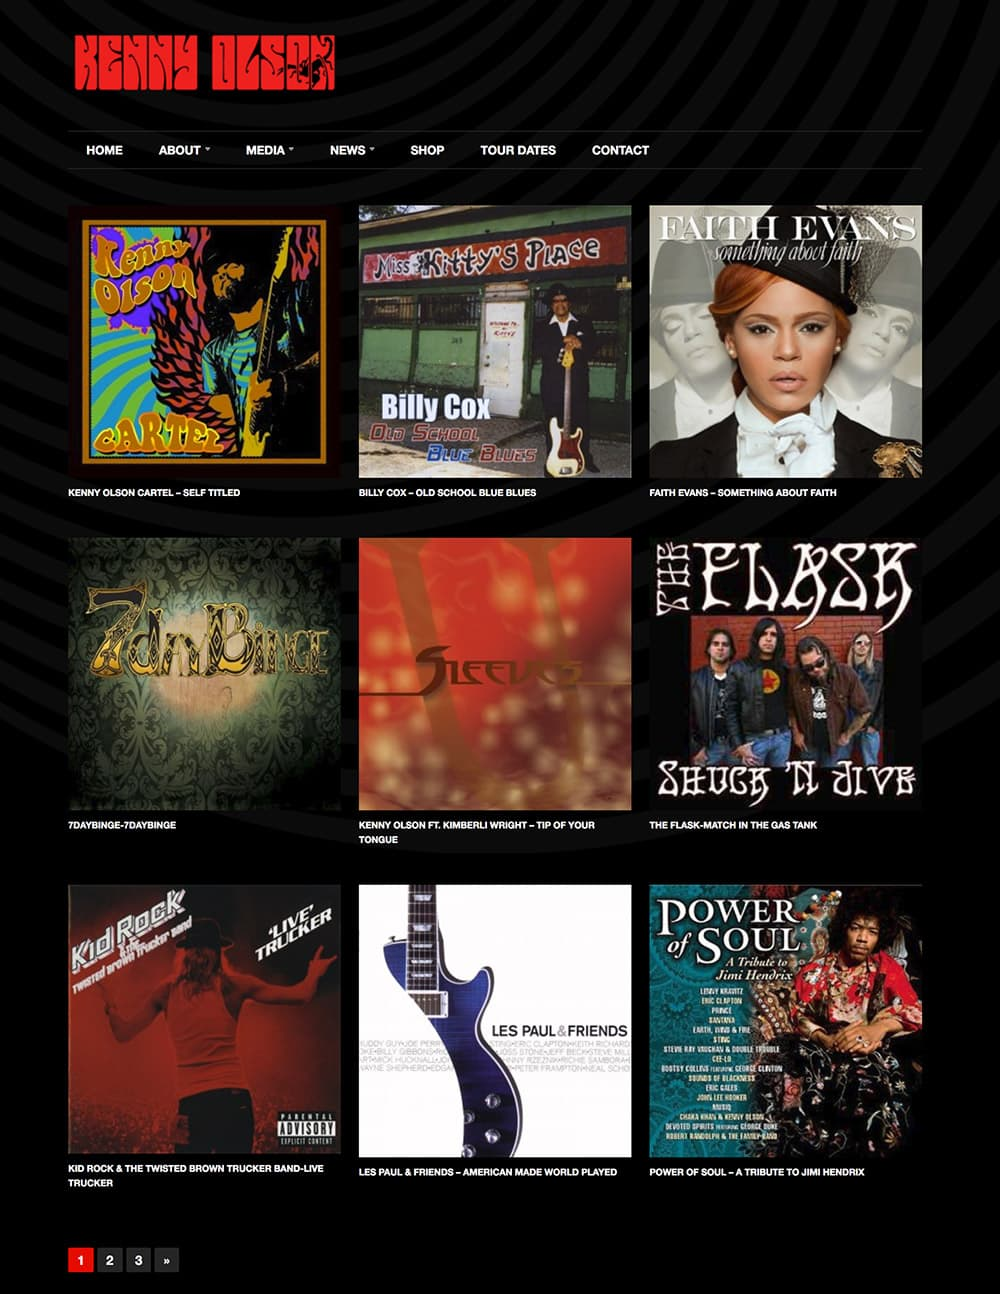 Kenny Olson Website Design - Discography Pages